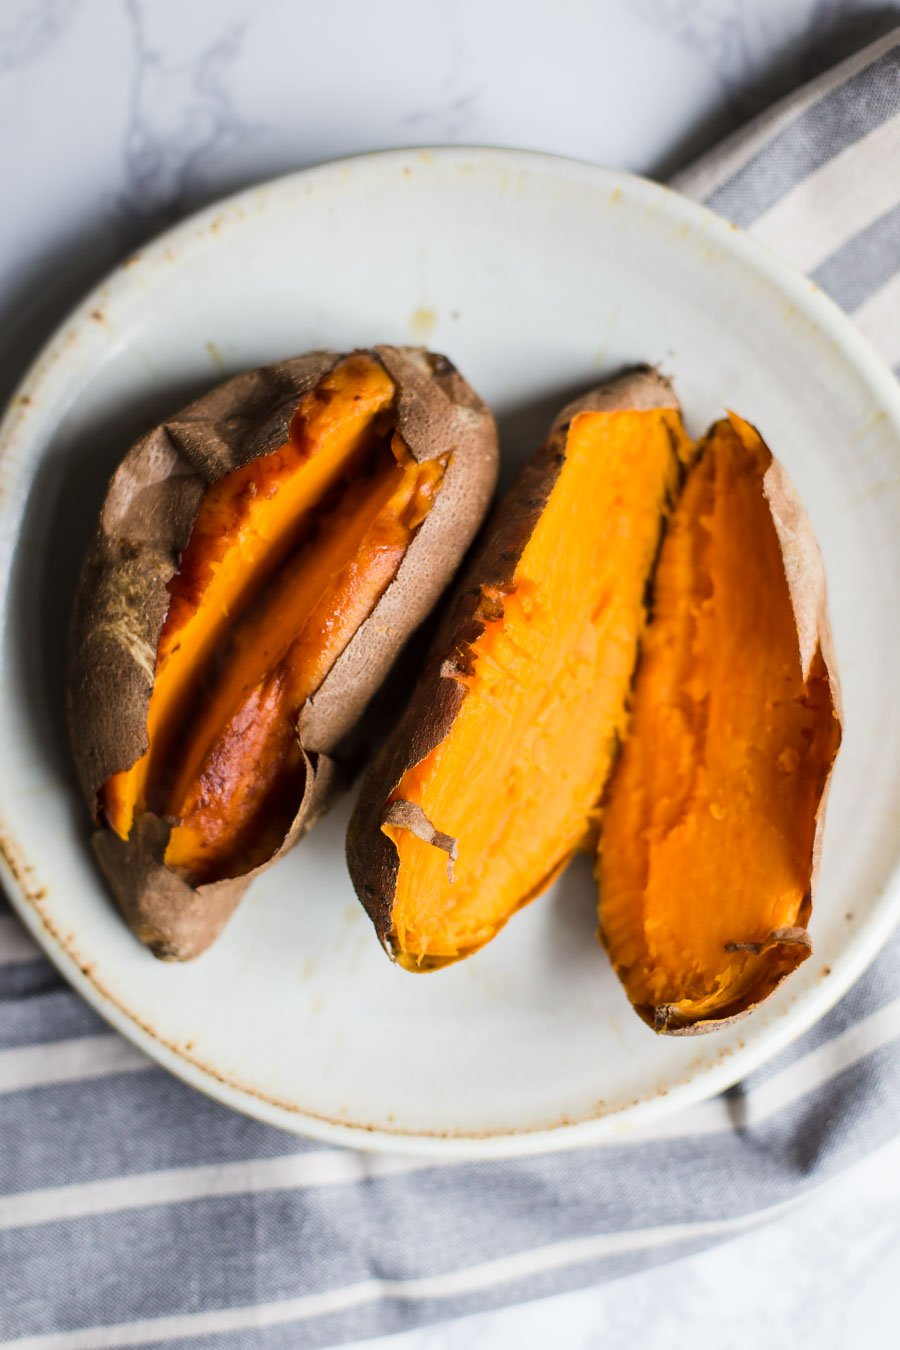 Loaded Breakfast Sweet Potatoes- sweet potatoes are perfect for breakfast! This recipe is easy to make and FULLY vegan. Also makes a great dessert recipe!